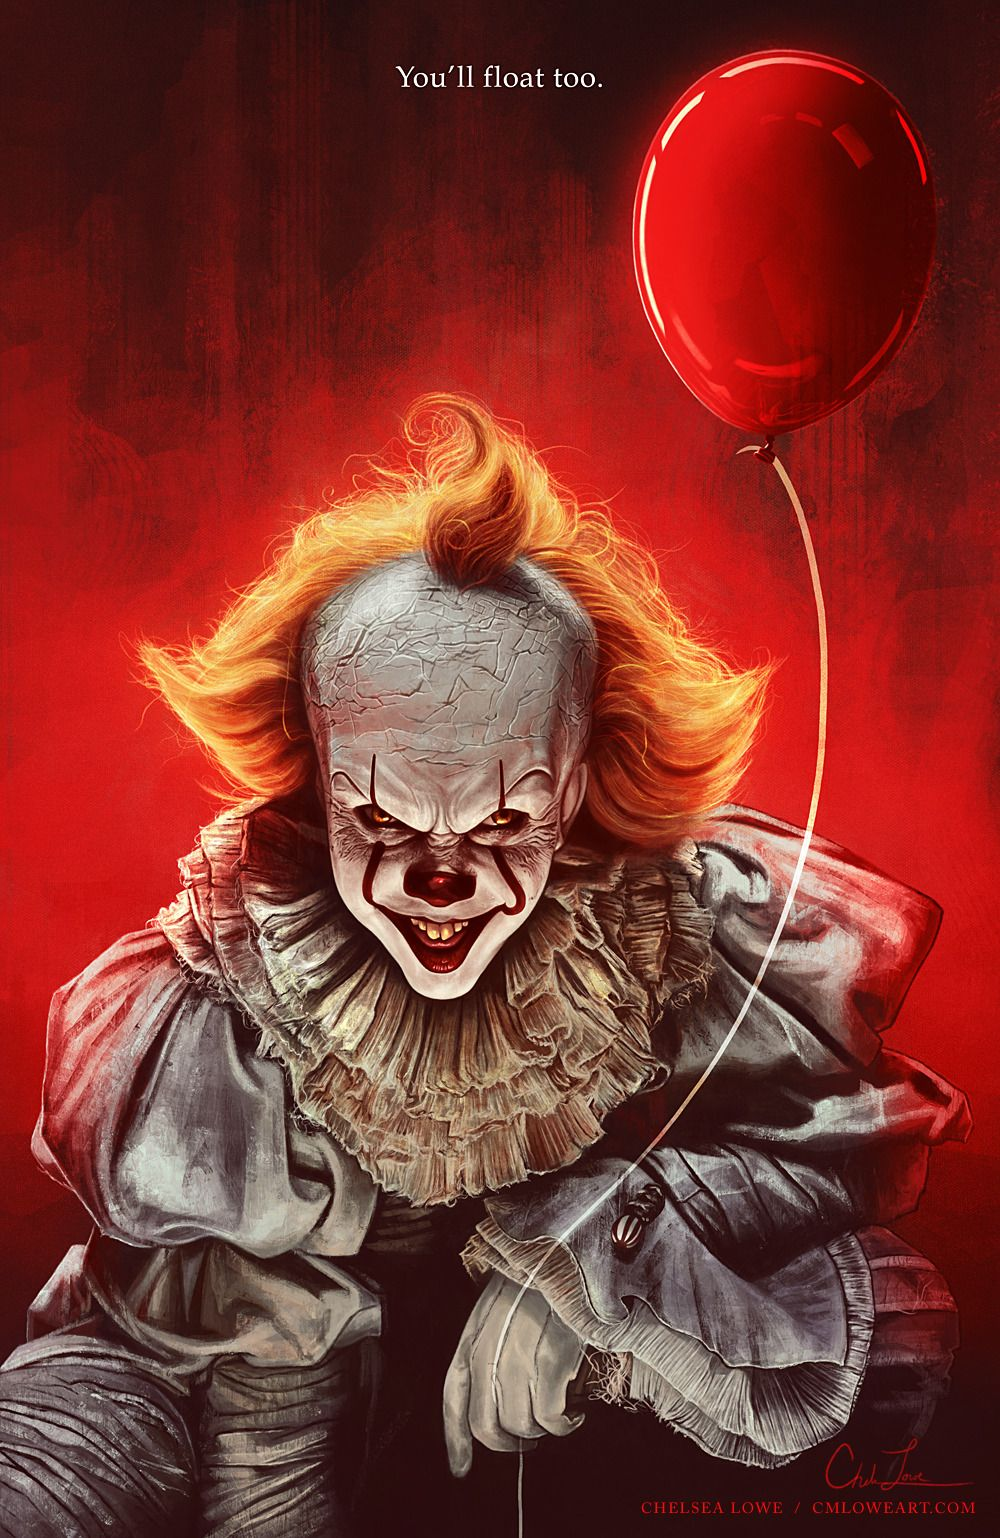 Cmloweart This Isn T Real Enough For You Billy I M Not Real Enough For You It Was Real Enough Clown Horror Pennywise The Dancing Clown Horror Movie Art